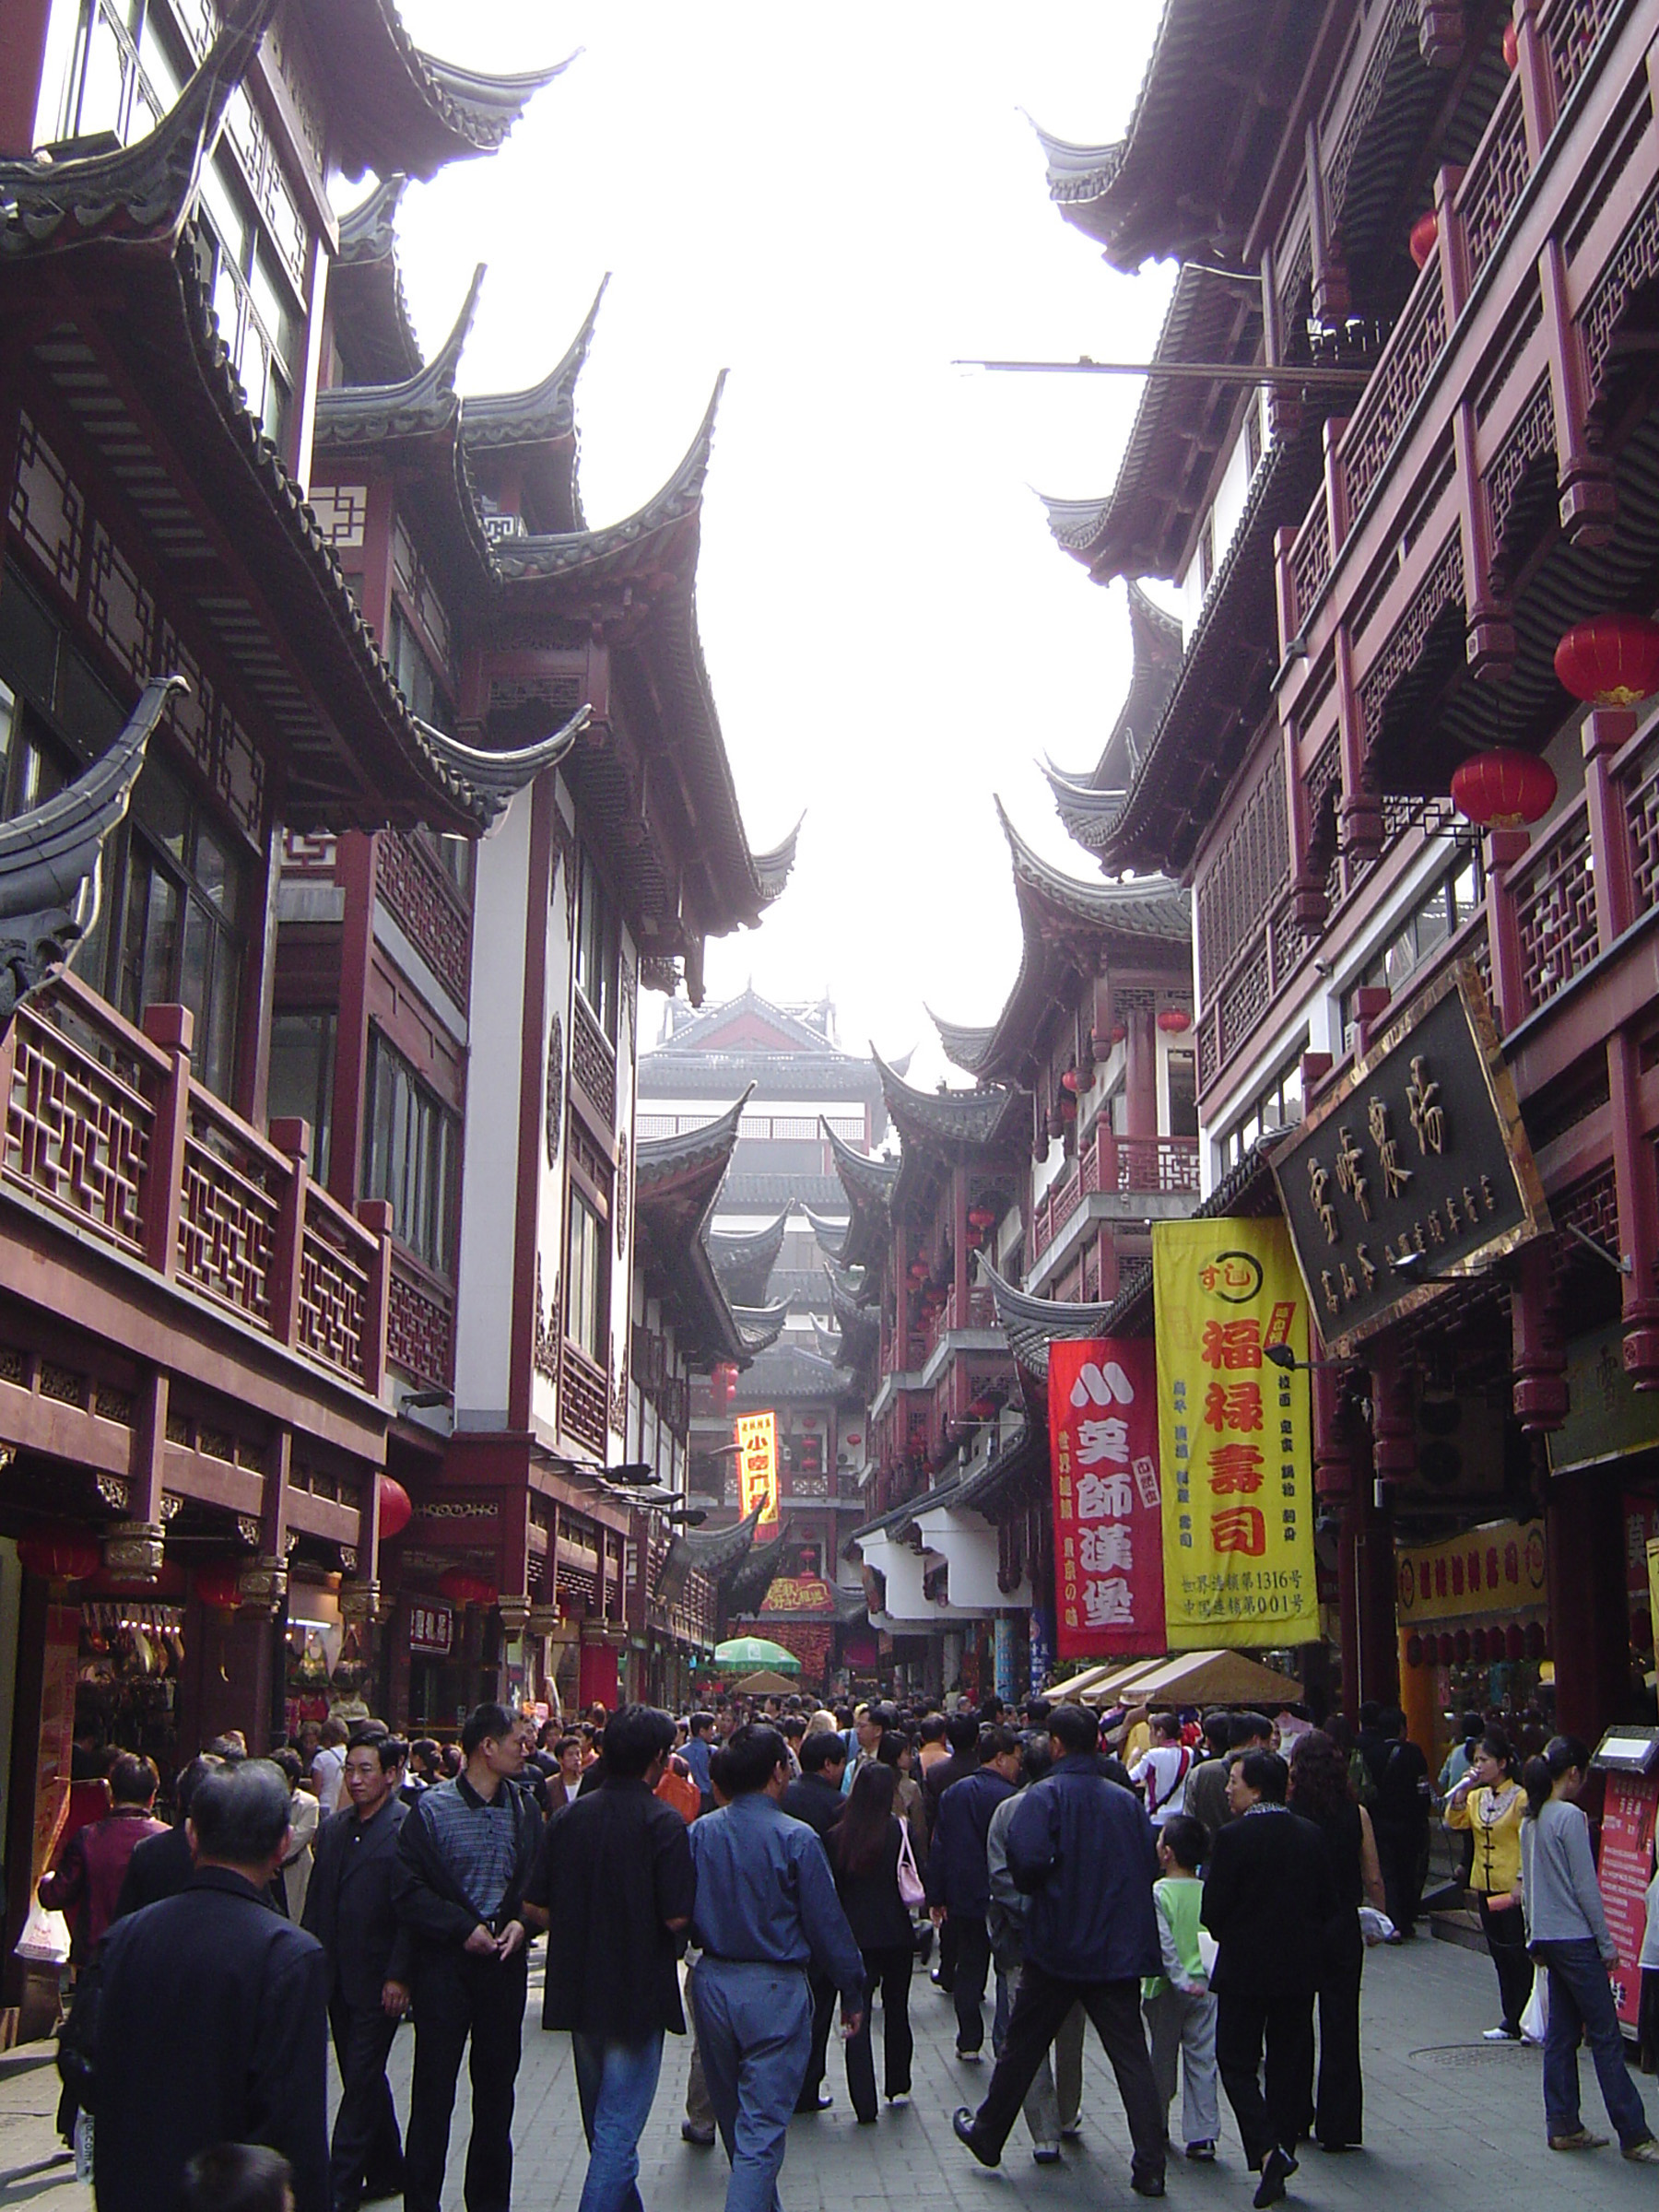 Random People at Ordinary Chinese Street with Huge Architectural Buildings Along the Sides.